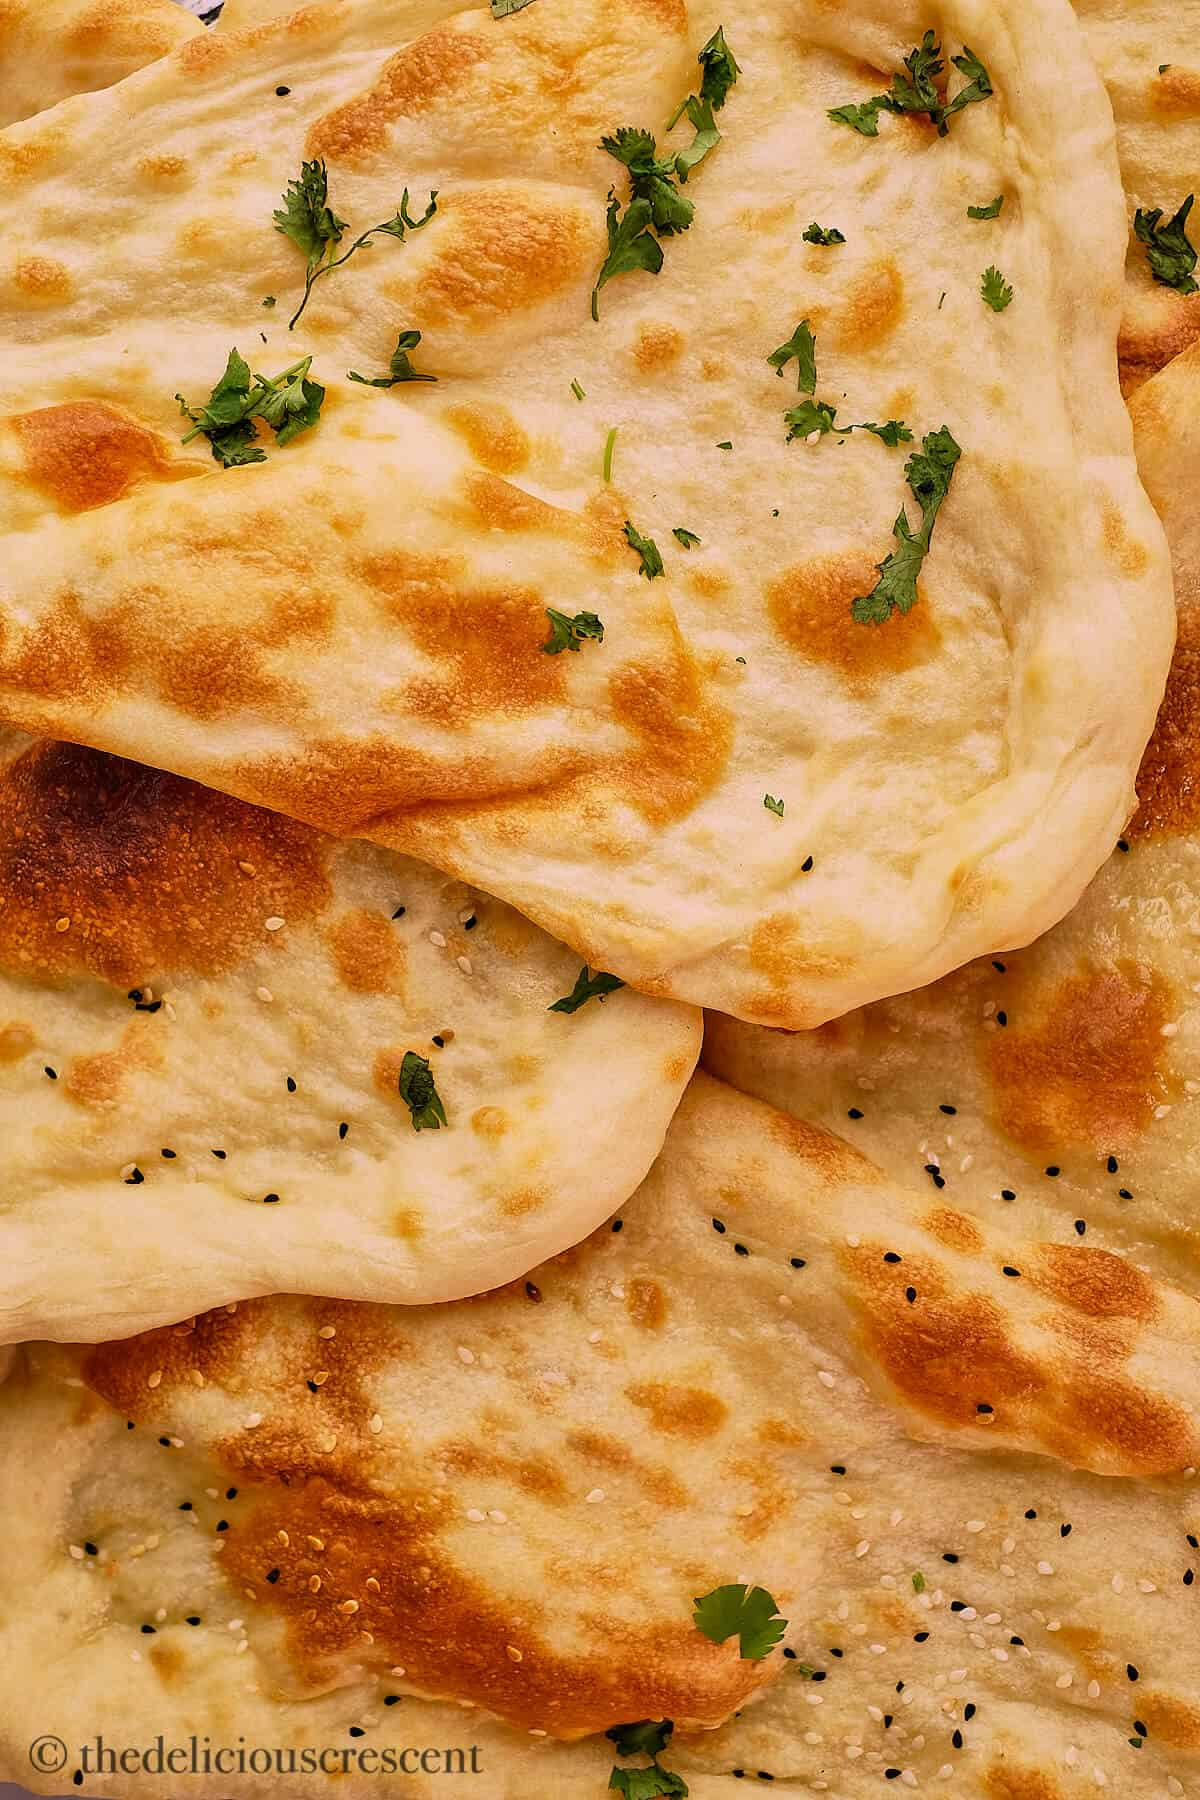 Close up view of naans.